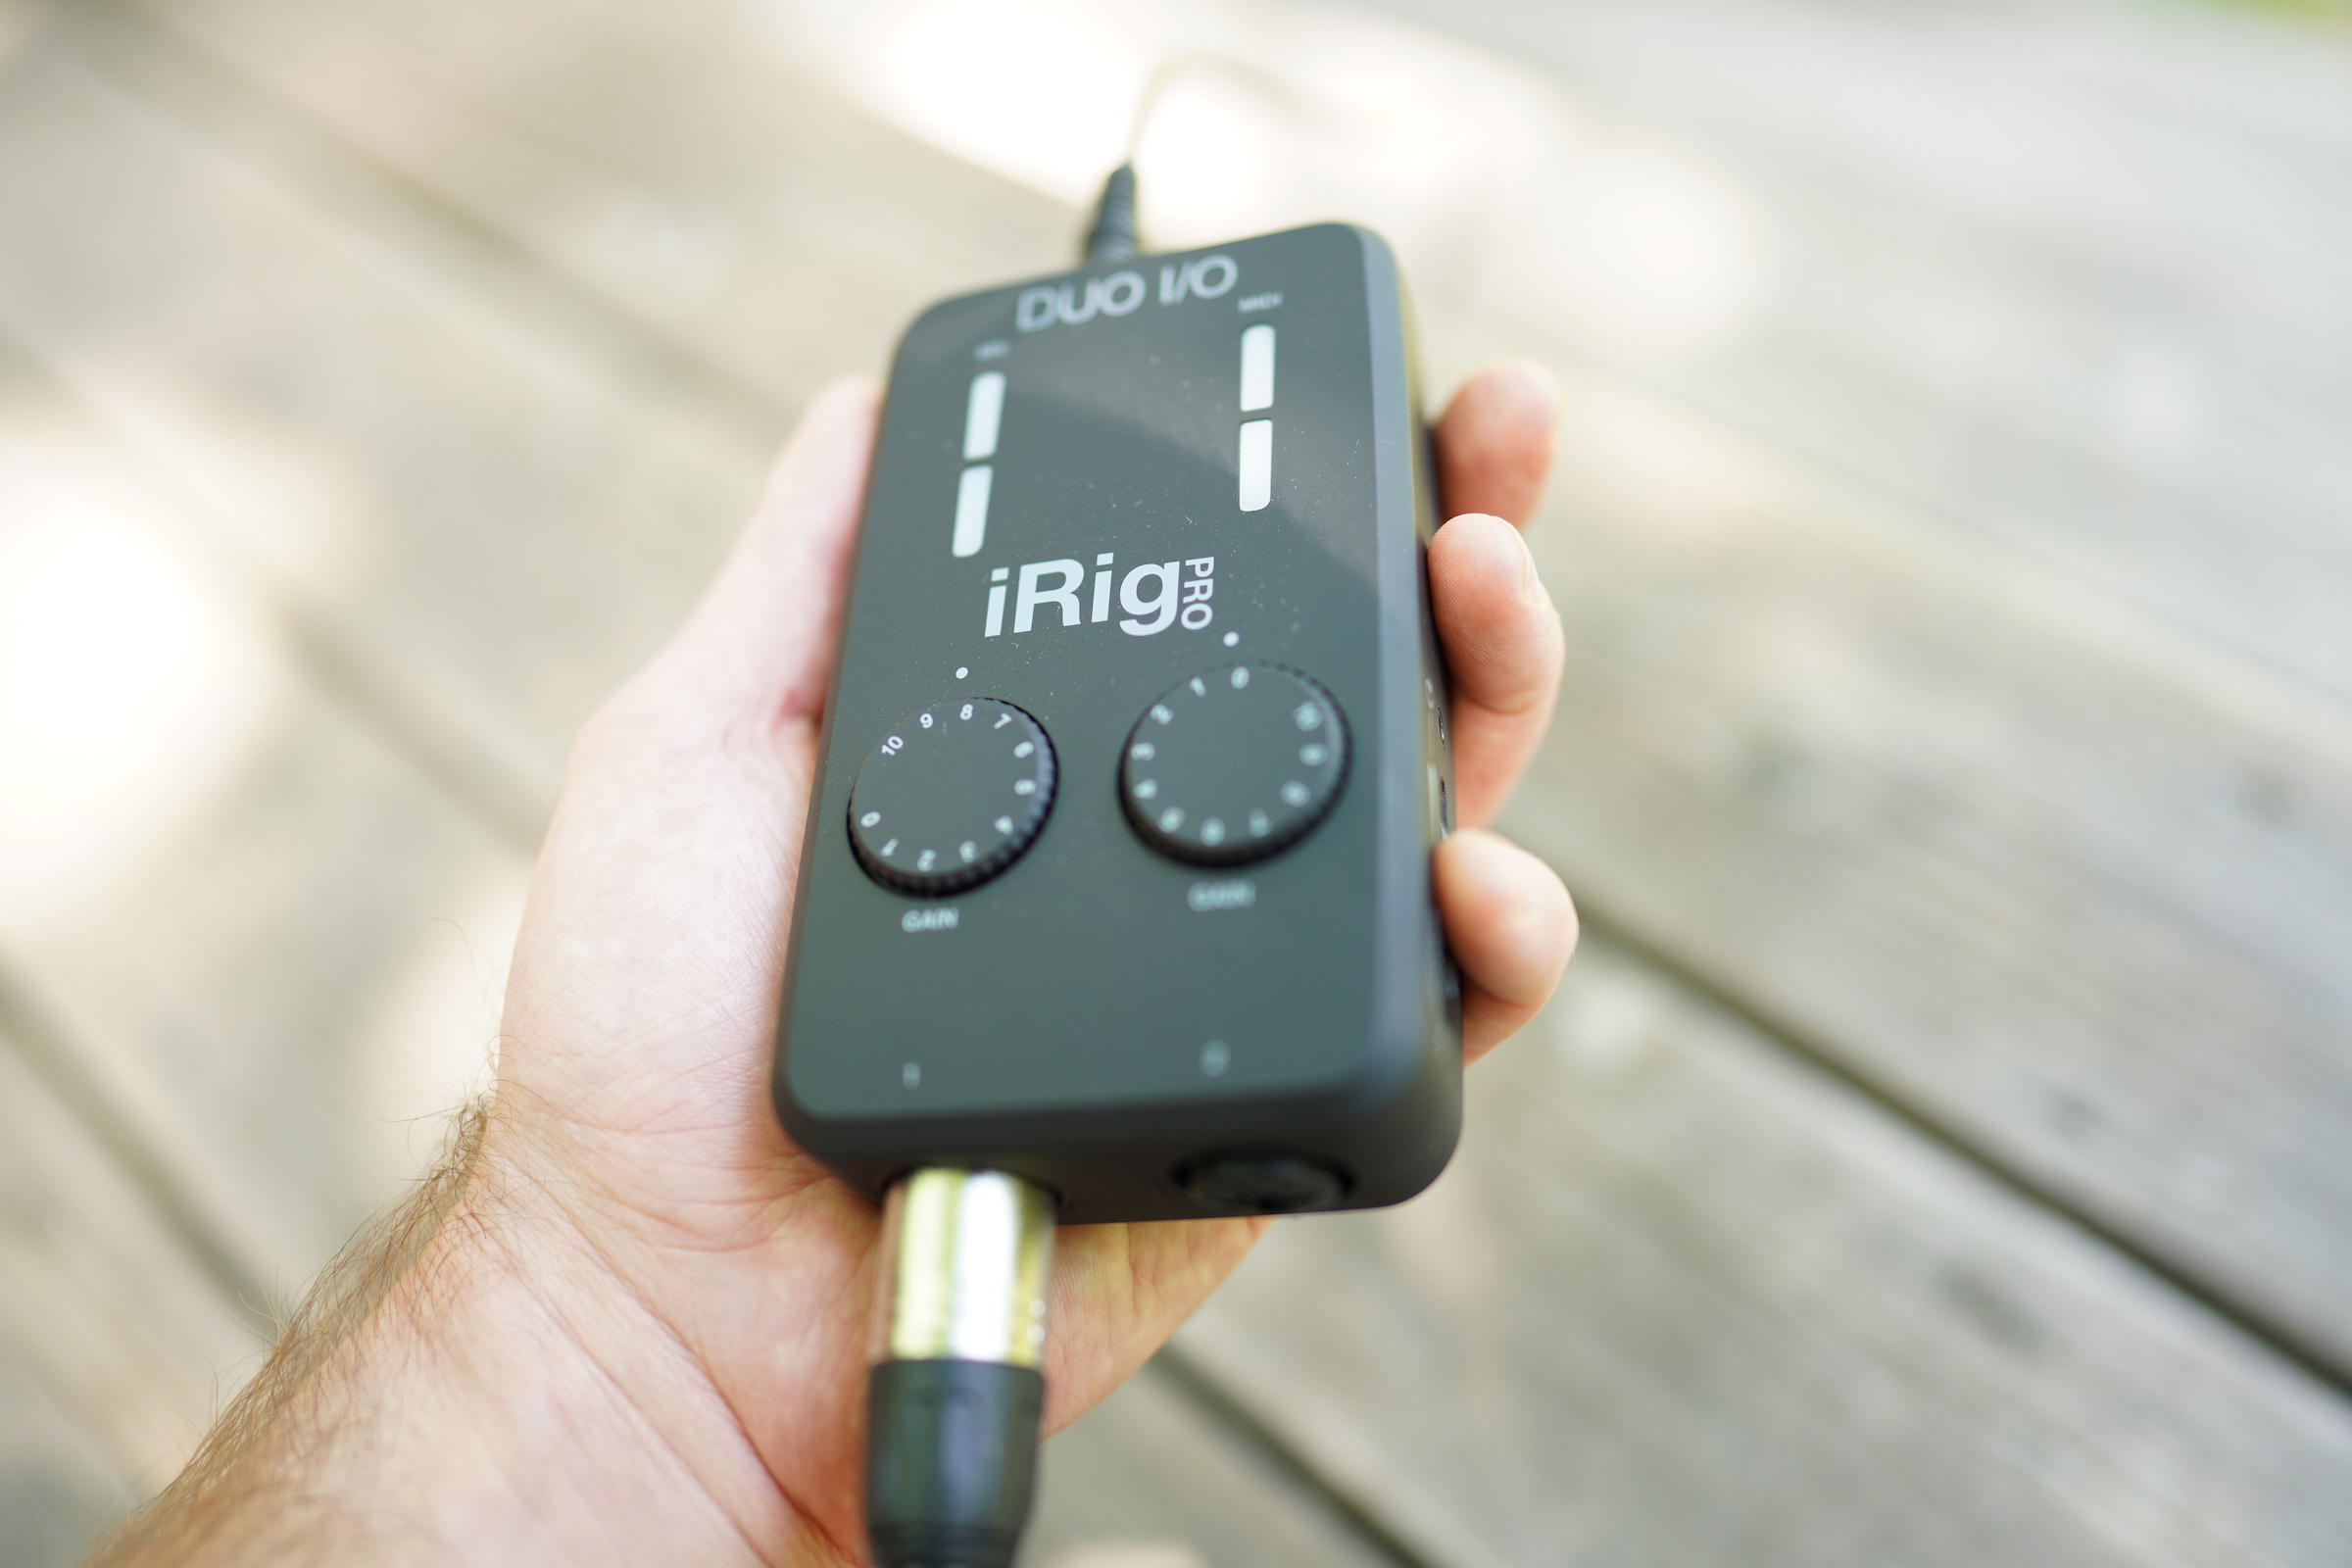 The iRig Pro Duo I/O makes managing advanced audio workflows simple anywhere – TechCrunch